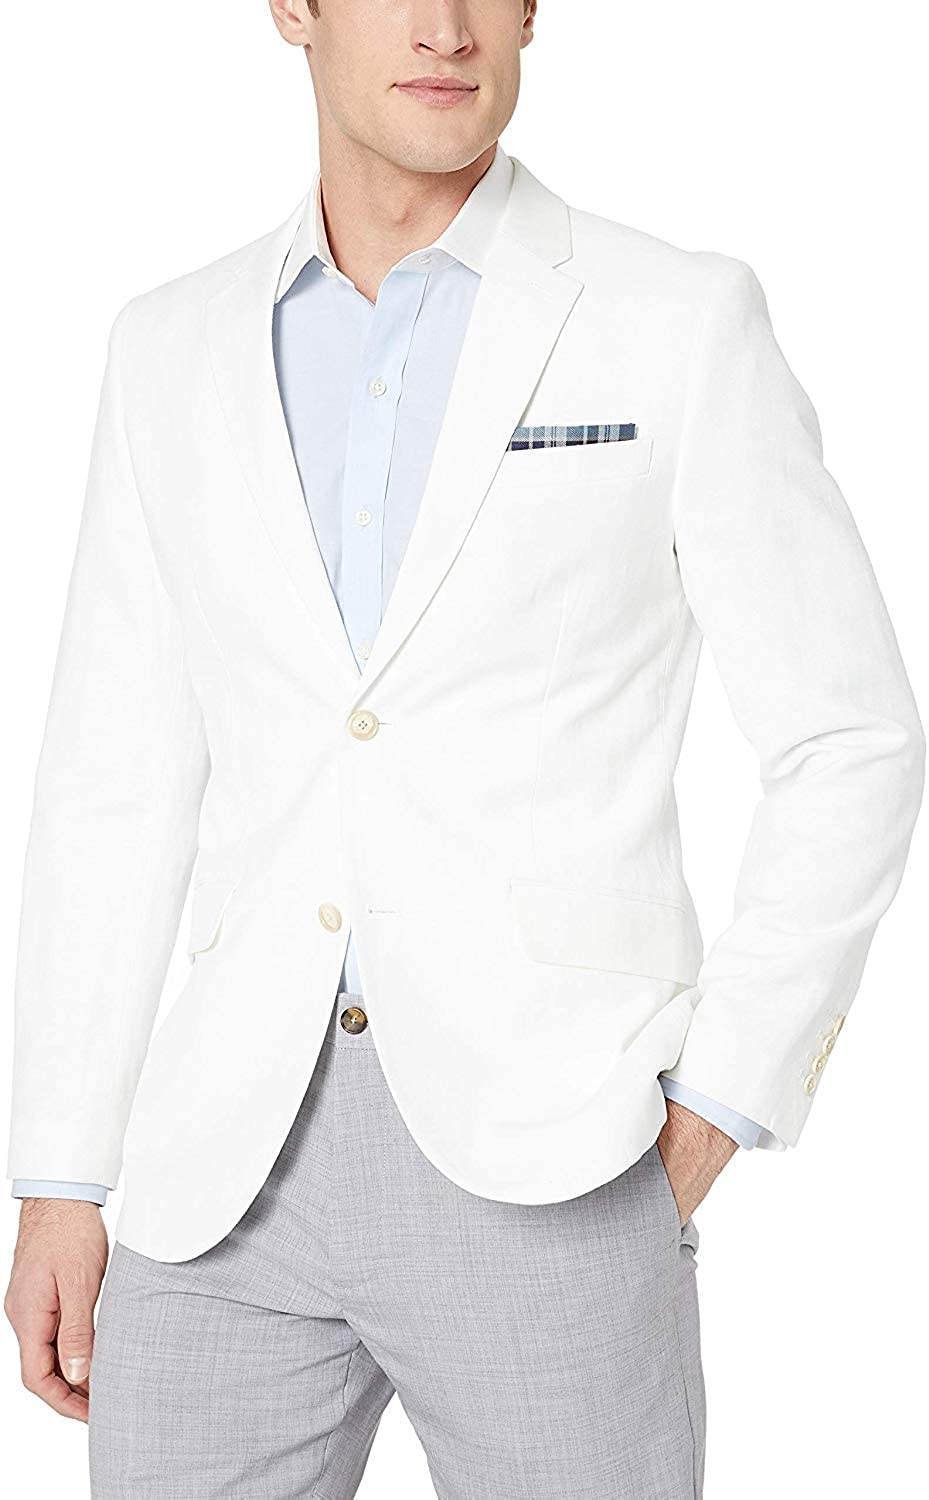 Perry Ellis Men's Slim SEAL limited product Jacket Linen Clearance SALE! Limited time! End Fit